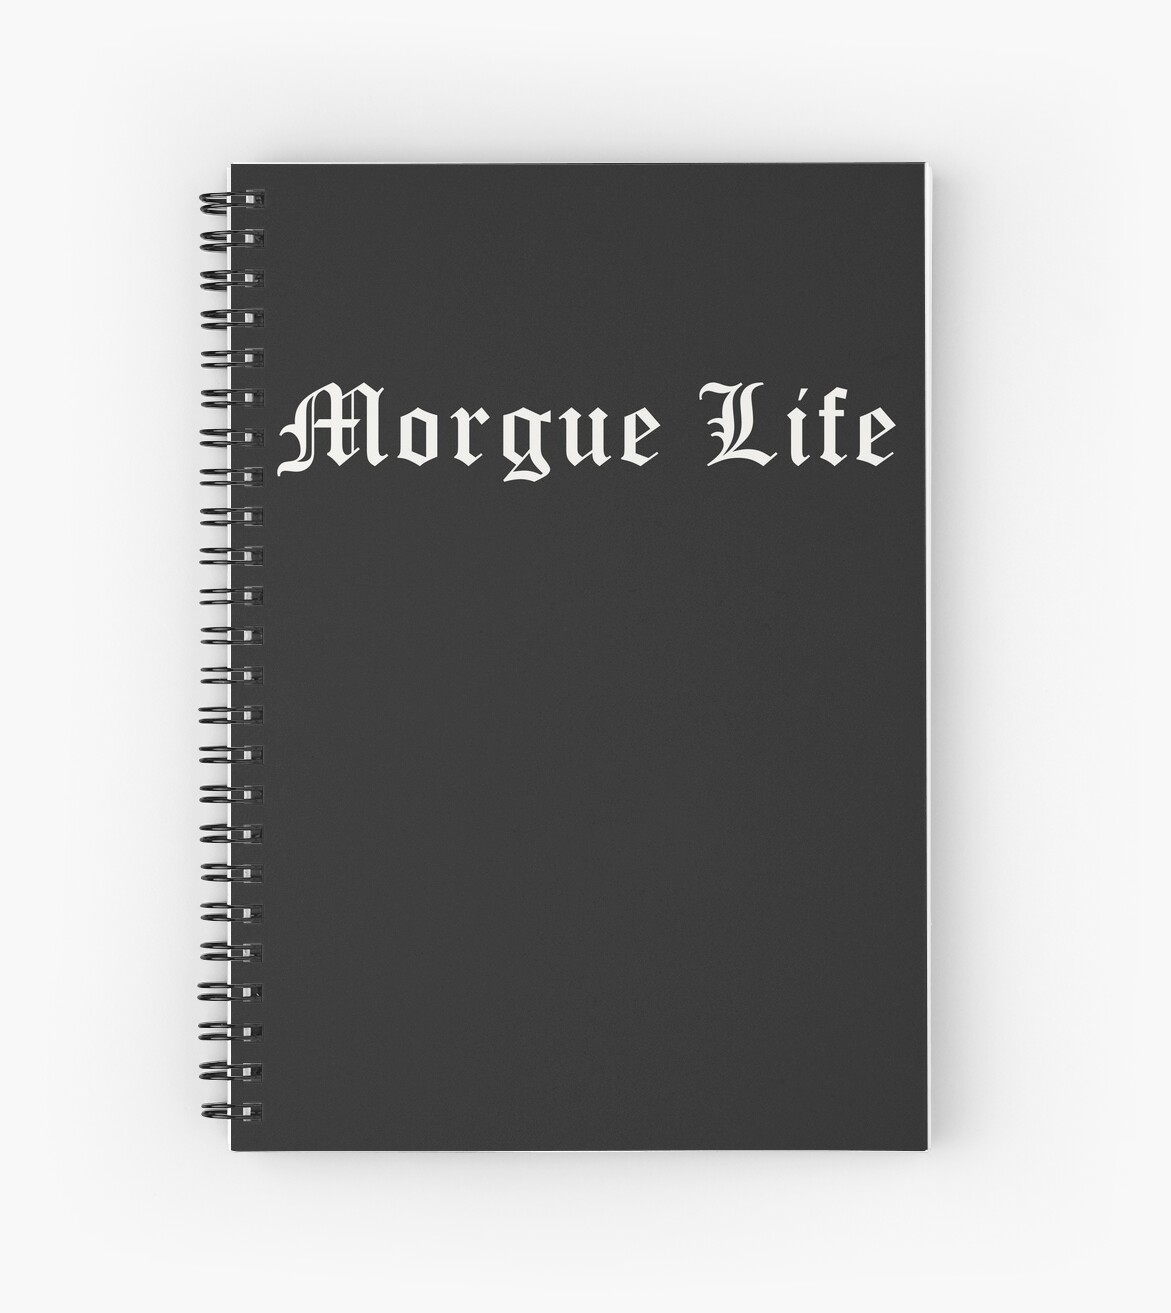 \'Morgue Life Mortuary Funeral Death Care Creepy Funny \' Spiral Notebook by  h44k0n